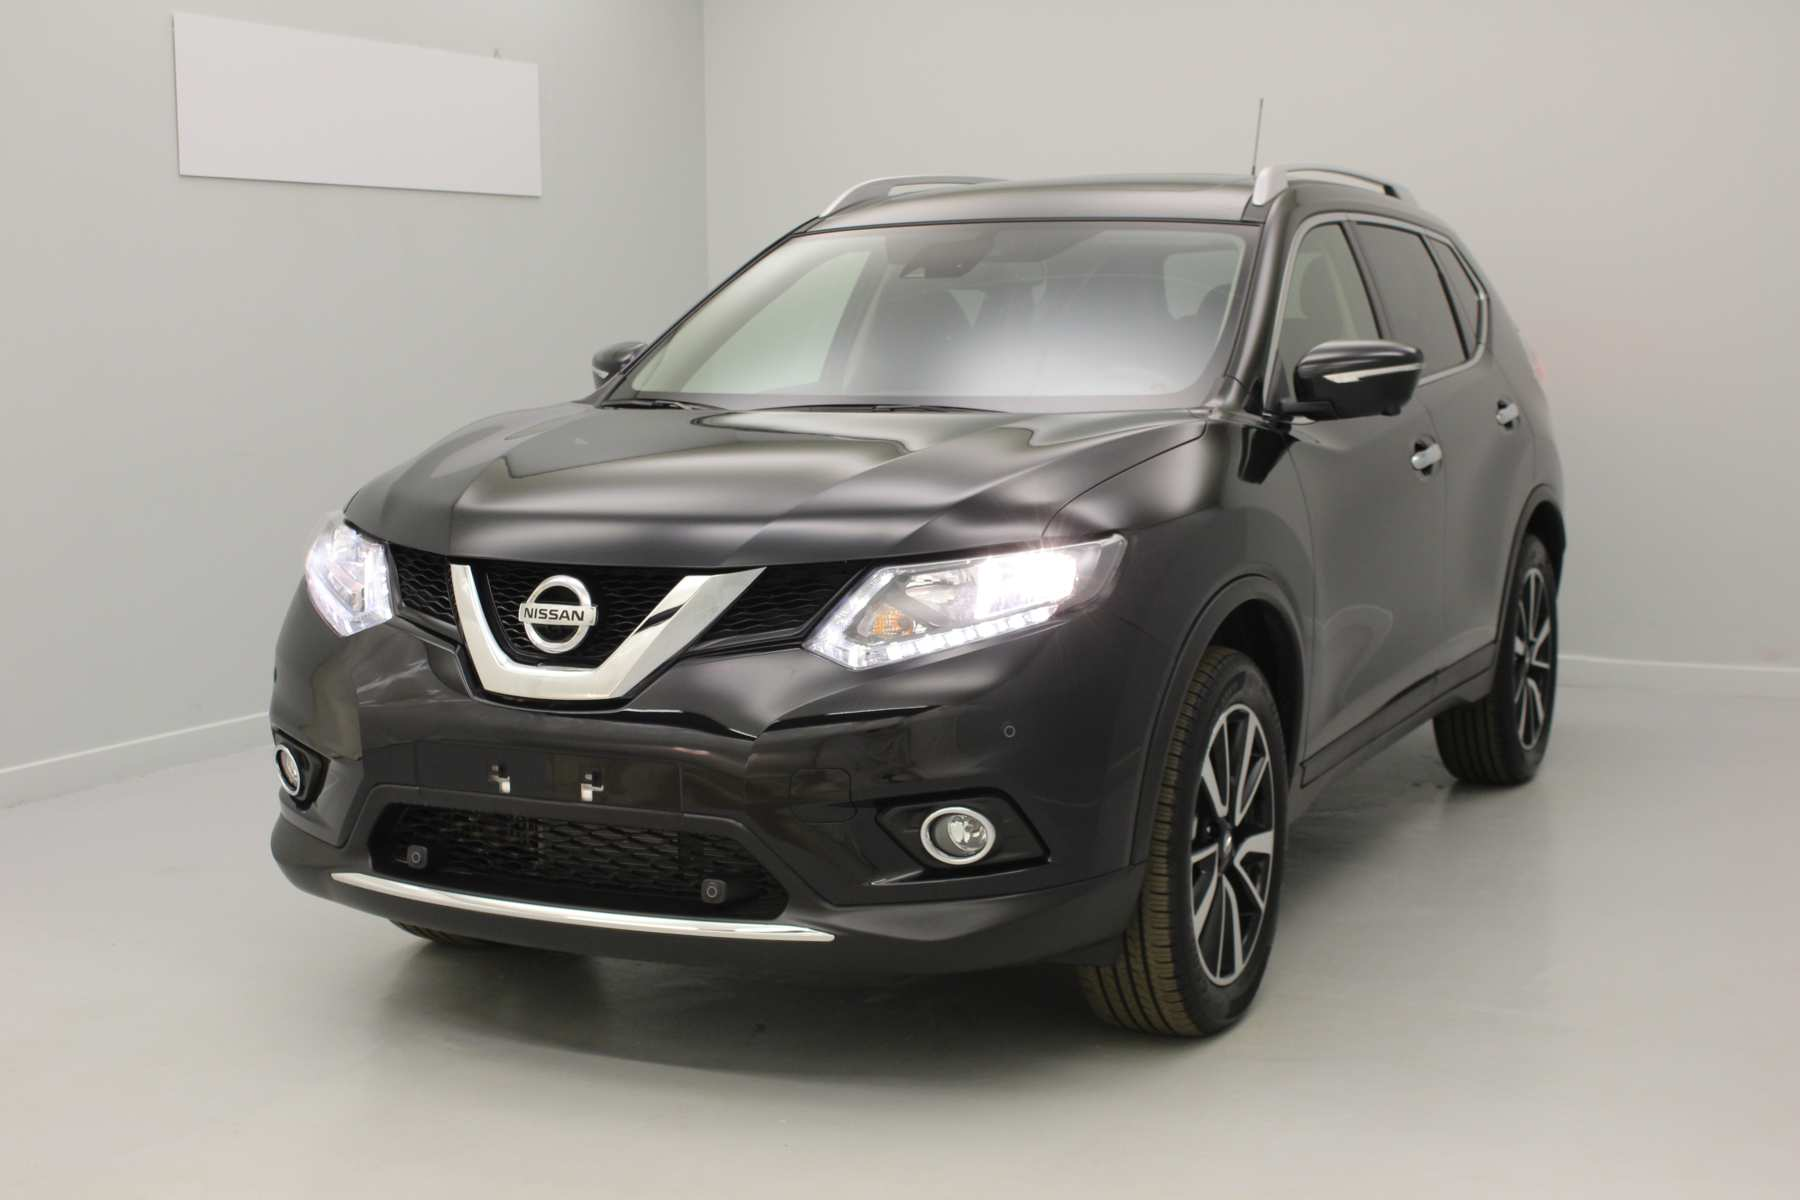 NISSAN X-Trail 1.6 DIG-T 163 Euro 6 7pl N-Connecta Noir Intense avec options